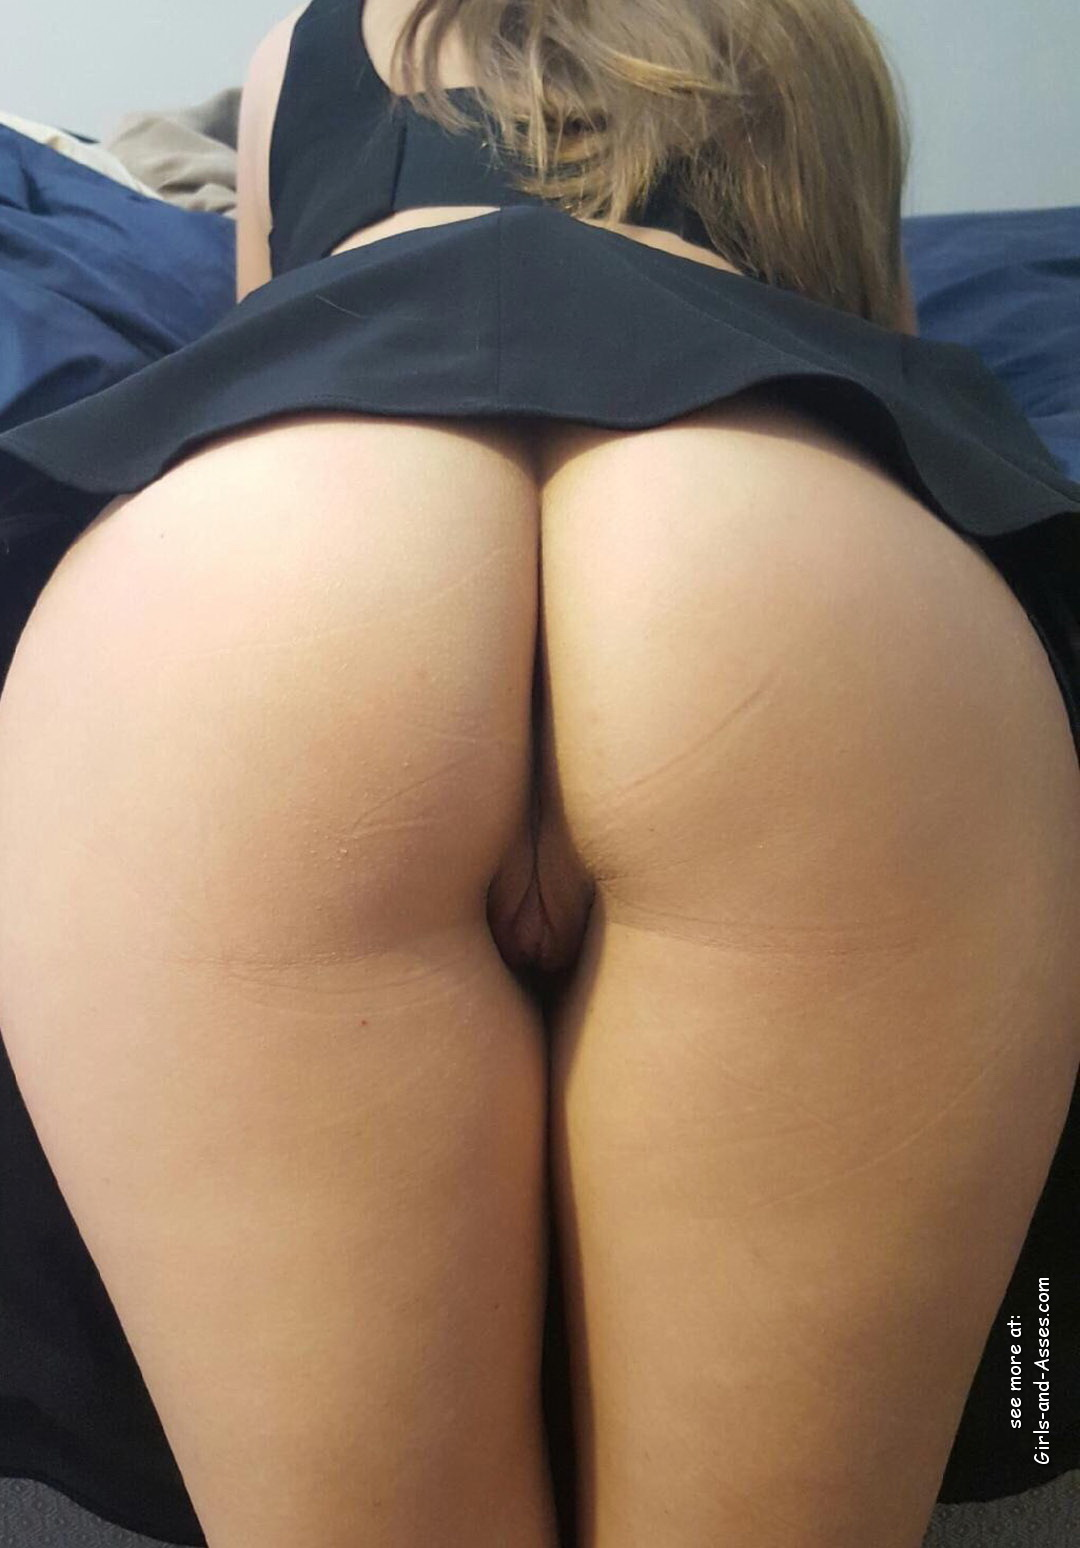 girl with amazing ass 02433